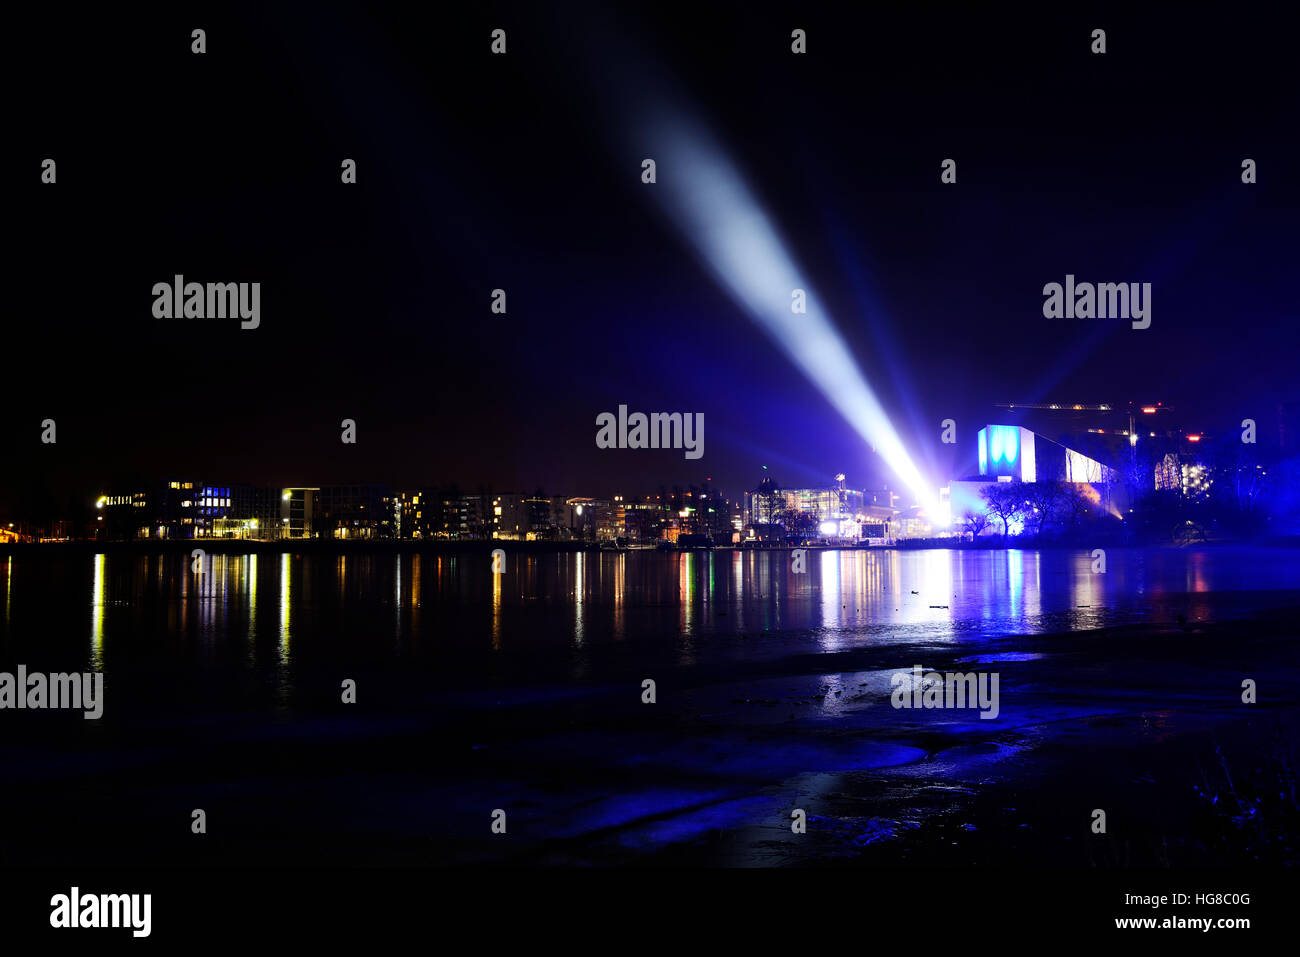 view of the New Year's Eve in Helsinki, December 31, 2016 - Stock Image